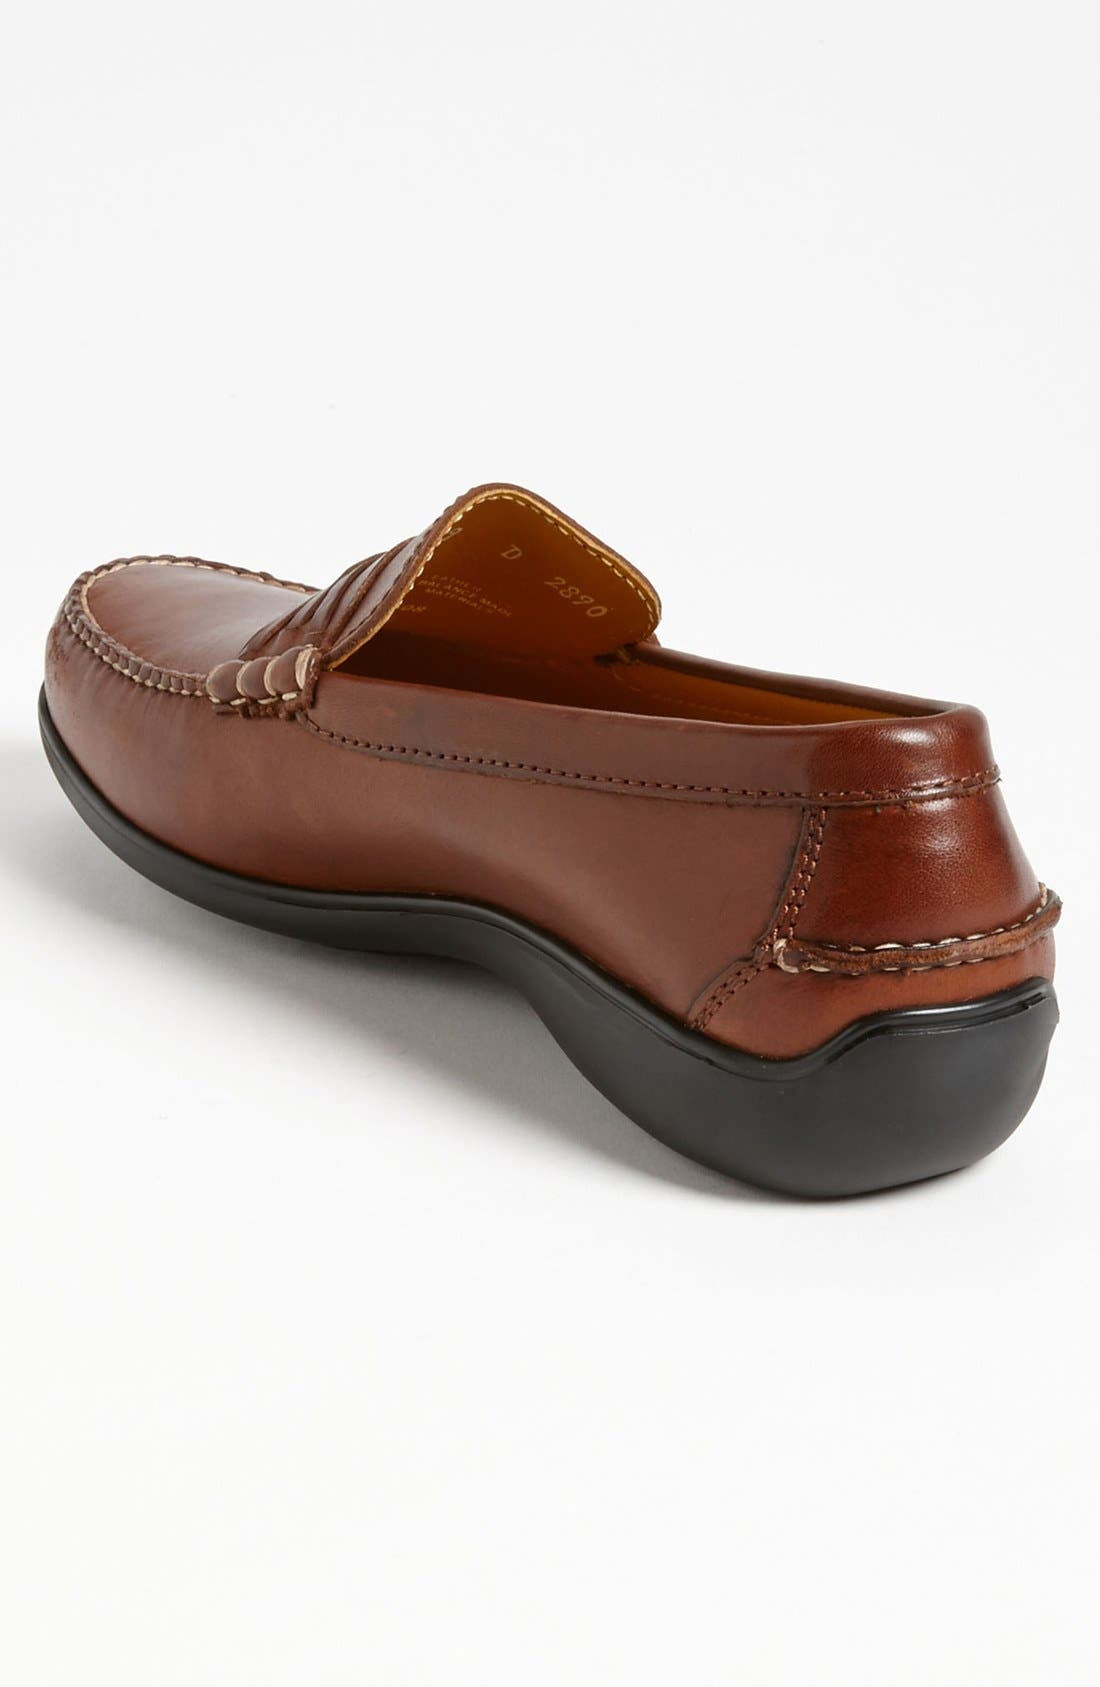 'Truman' Loafer,                             Alternate thumbnail 2, color,                             CHESTNUT